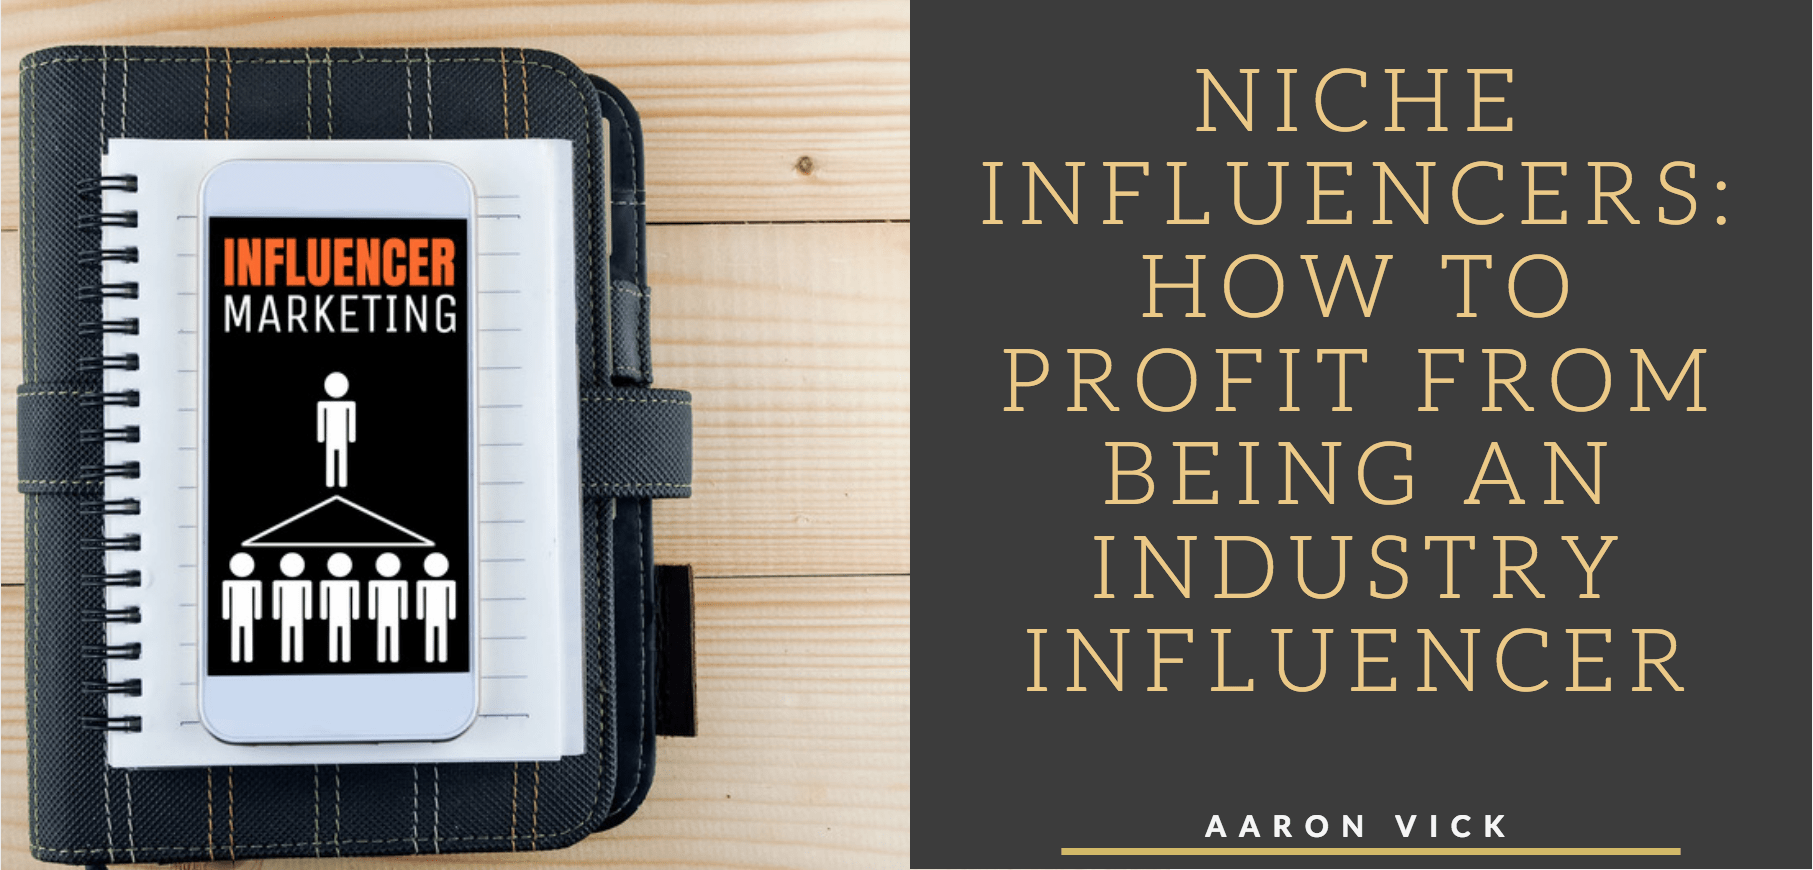 Aaron Vick - Niche Influencers: How To Profit From Being An Industry Influencer